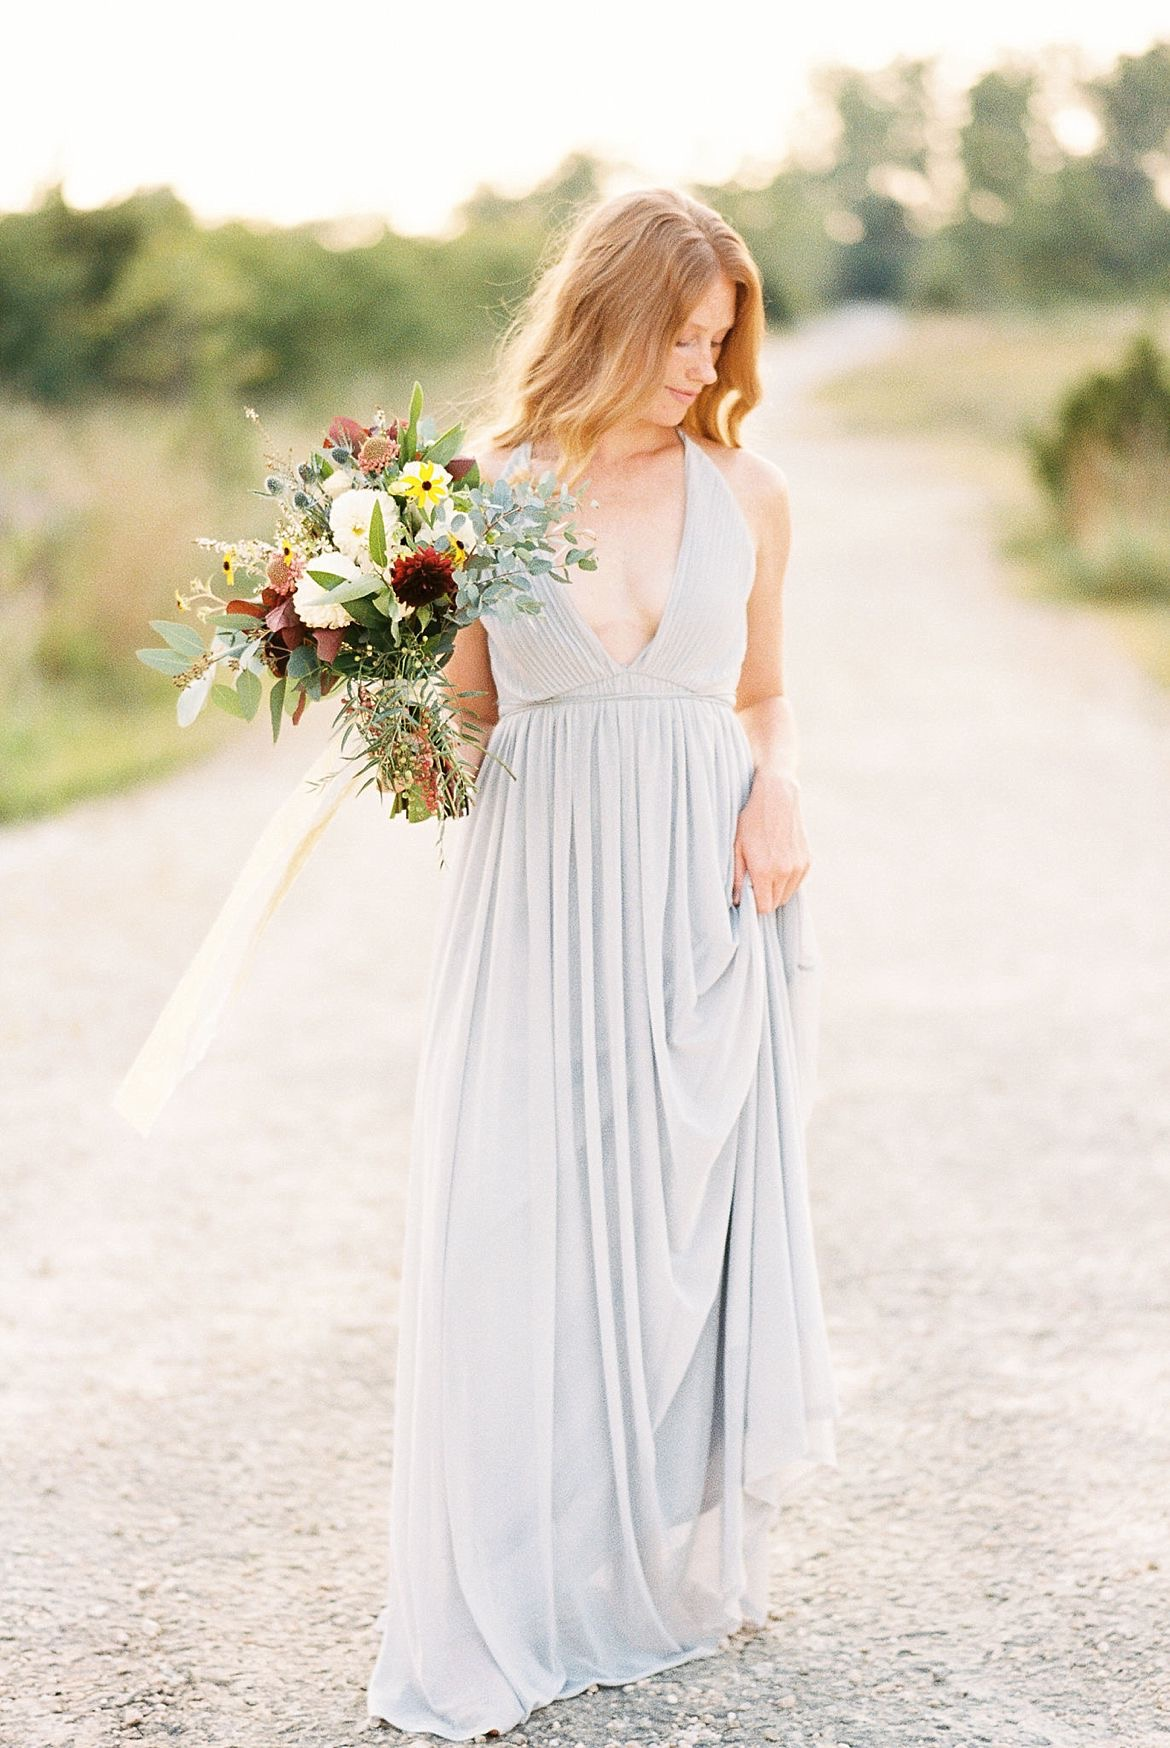 Autumnal Bridal Inspiration